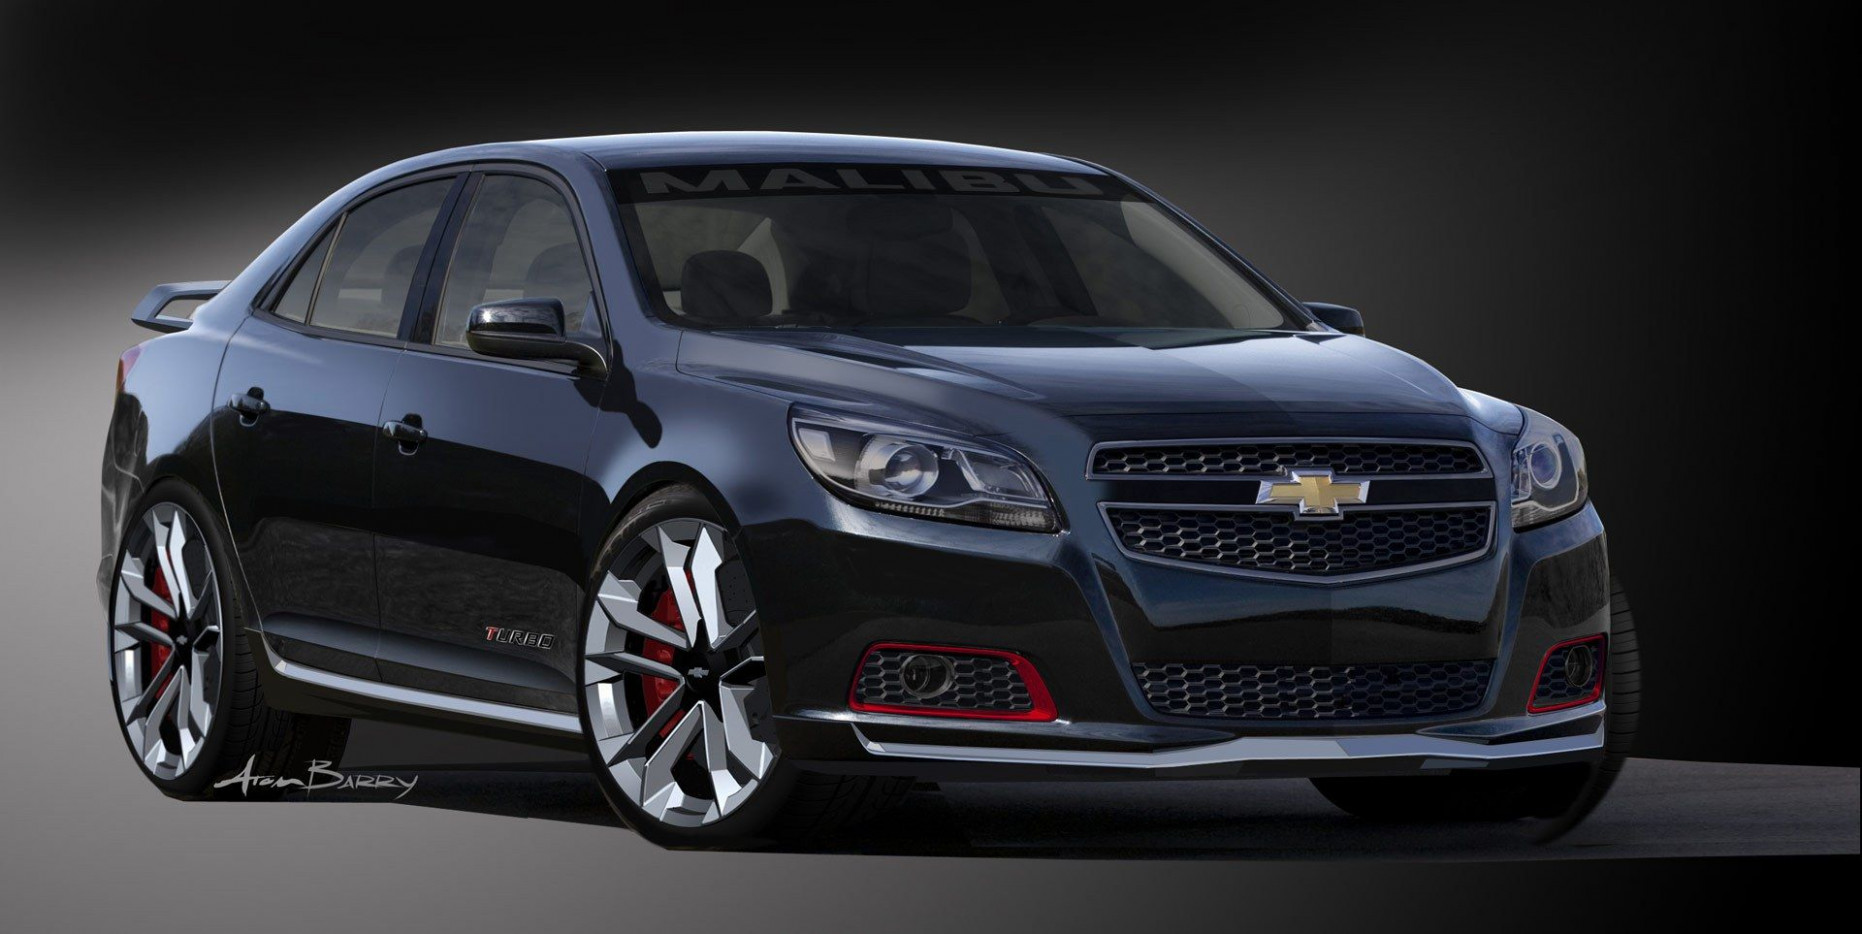 8 Chevrolet Malibu Redesign, Interior and Price Rumors ..